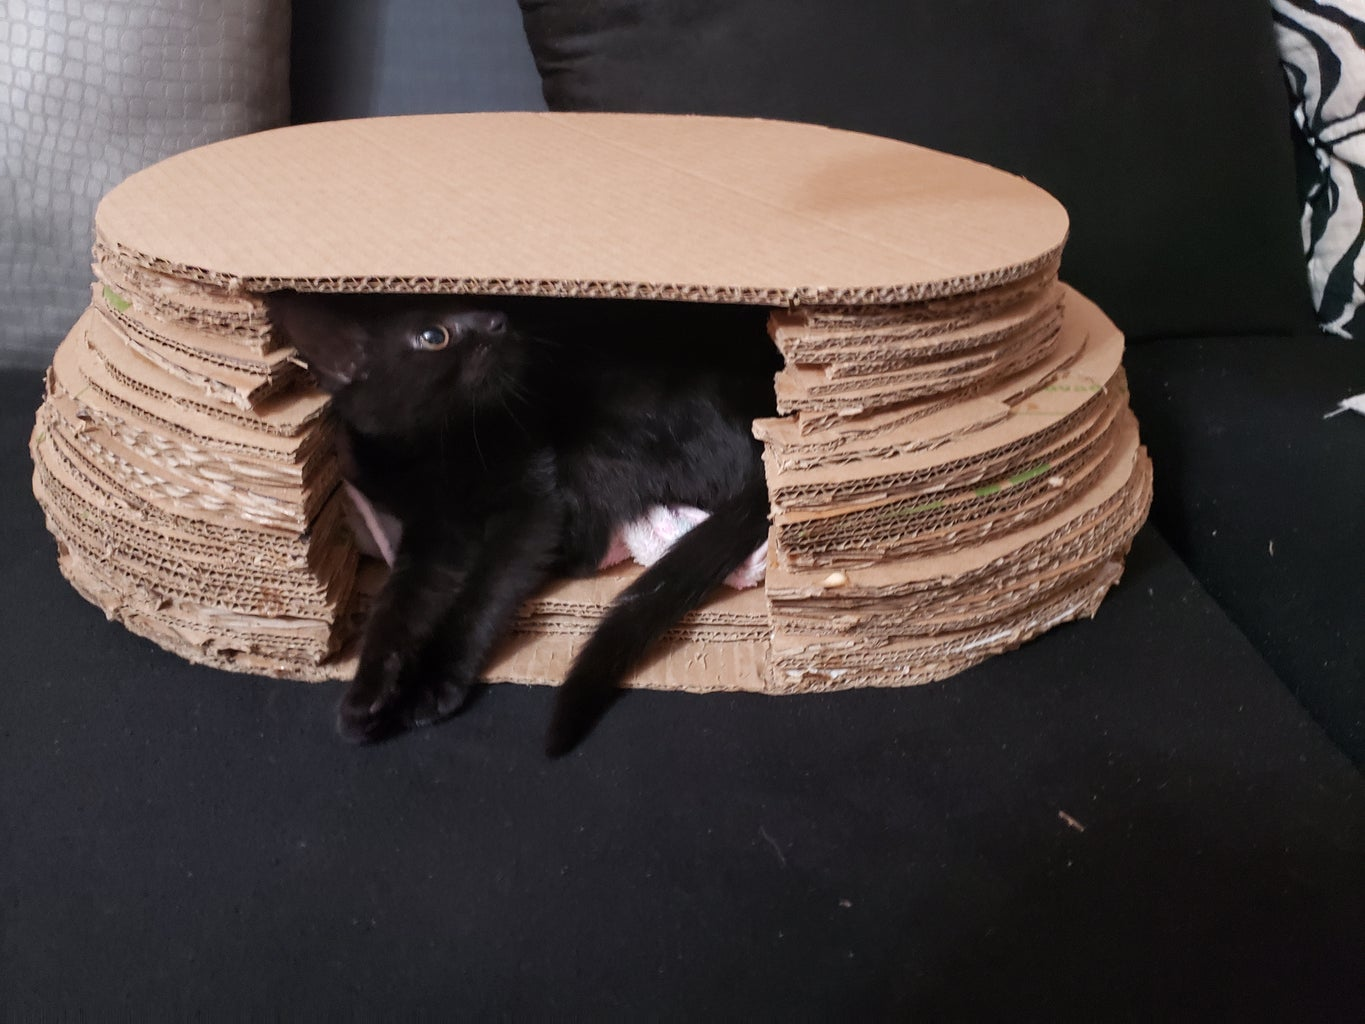 How to Make Cardboard Cave for Your Cat